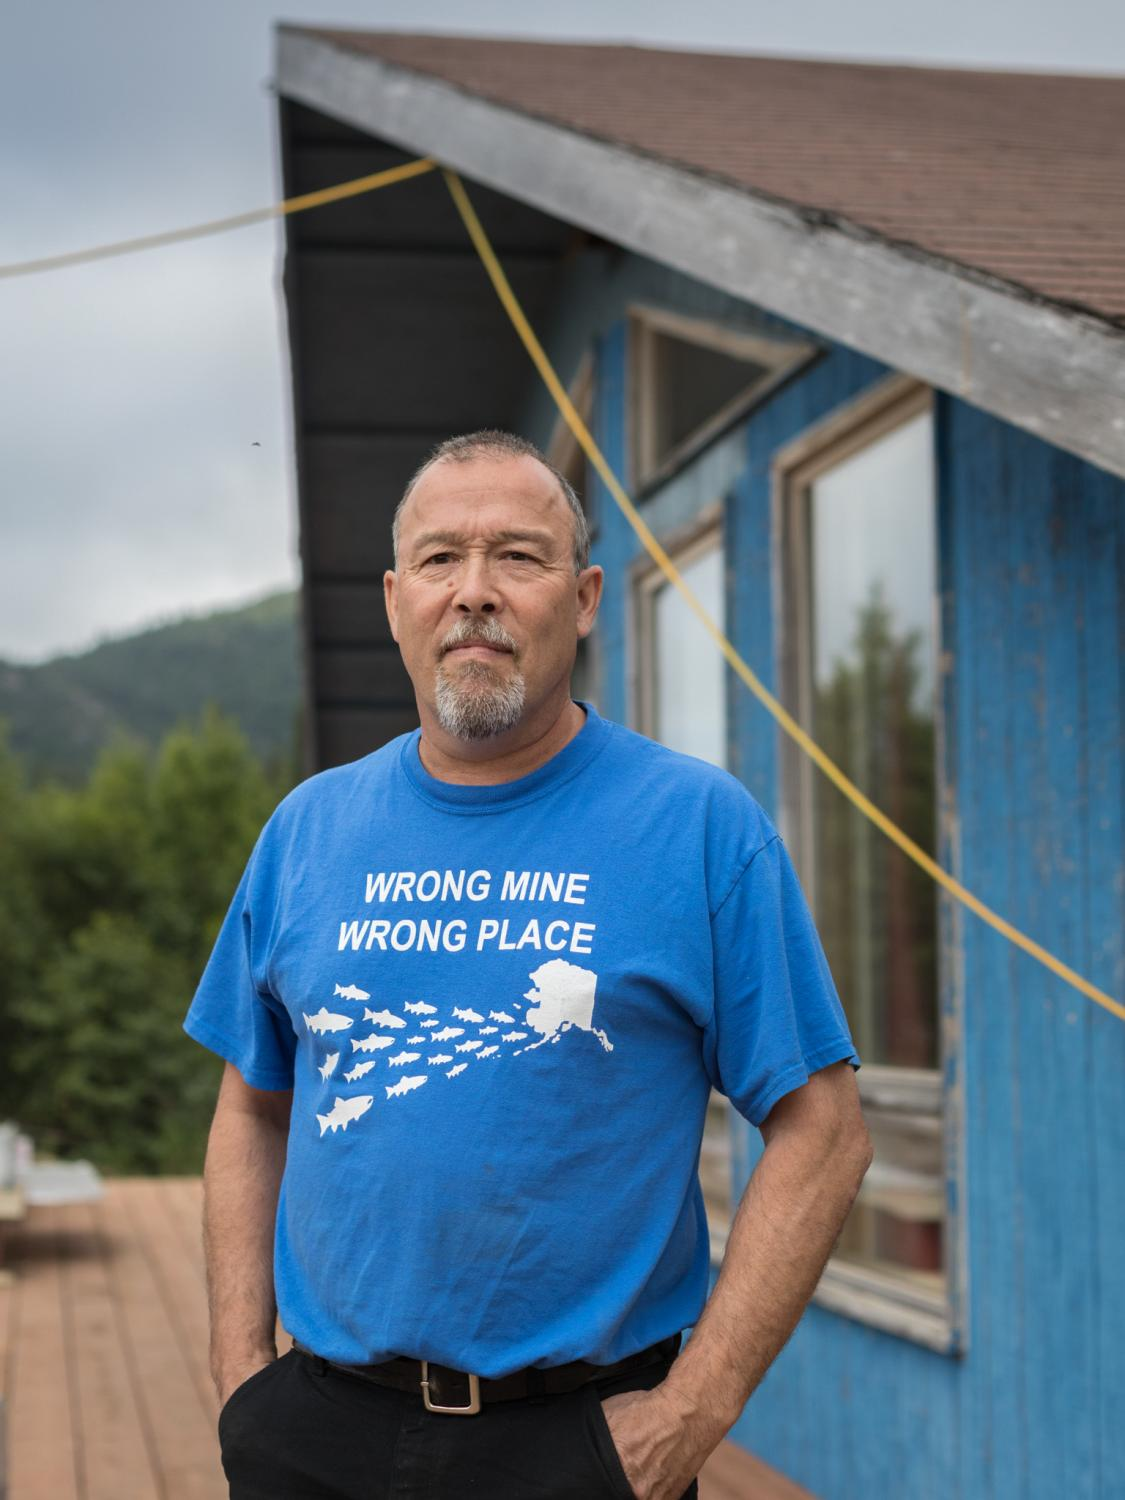 Keith Jensen, president of the Village Council of Pedro Bay, Alaska. This small settlement on the coast of Lake Iliamna has stood together against the proposed Pebble Mine, using the Village Council's land holdings to block a northern transportation route the mine had proposed.